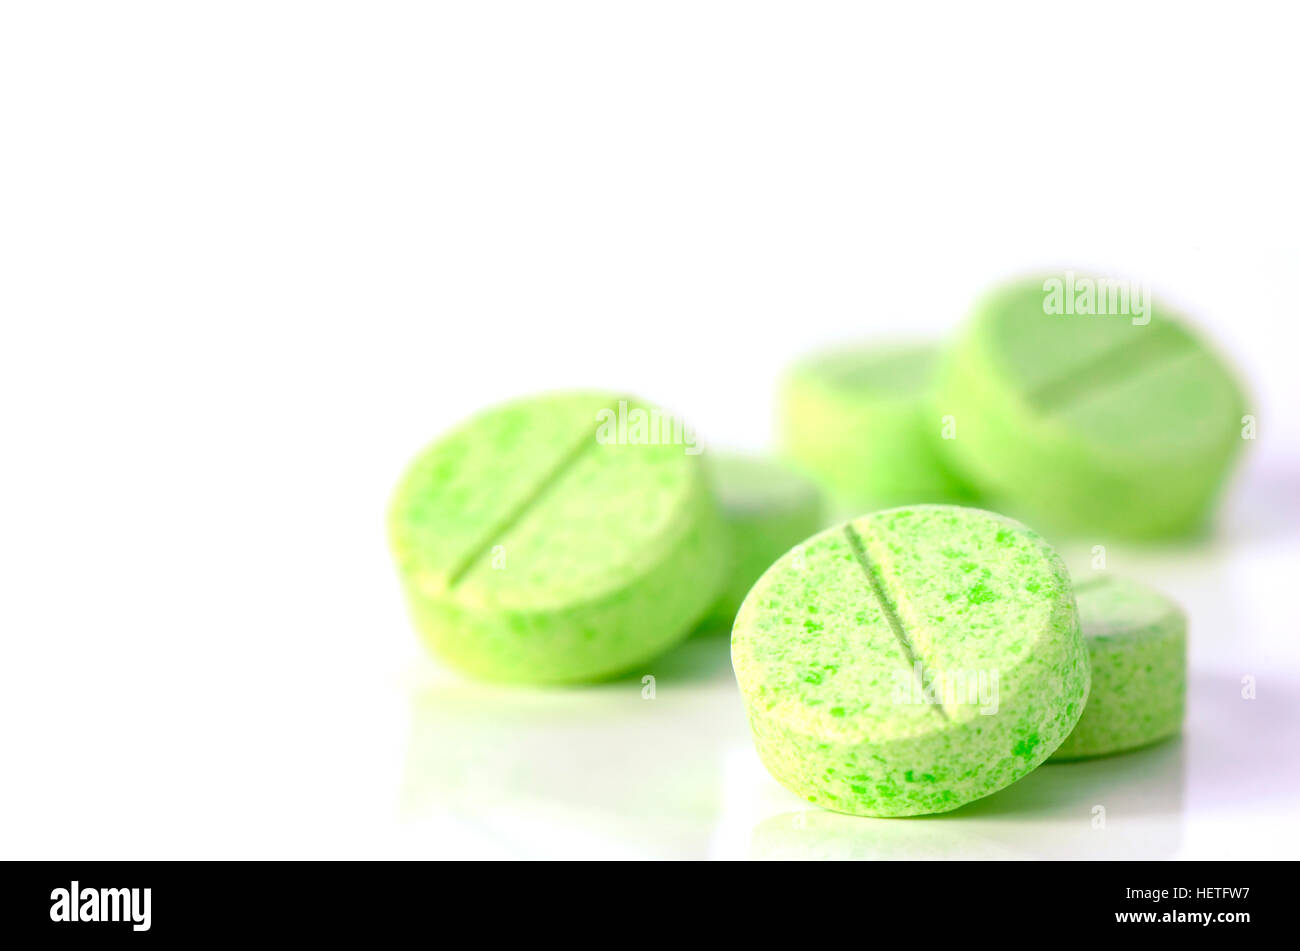 plan compress tablets with active ingredients granules insde. - Stock Image